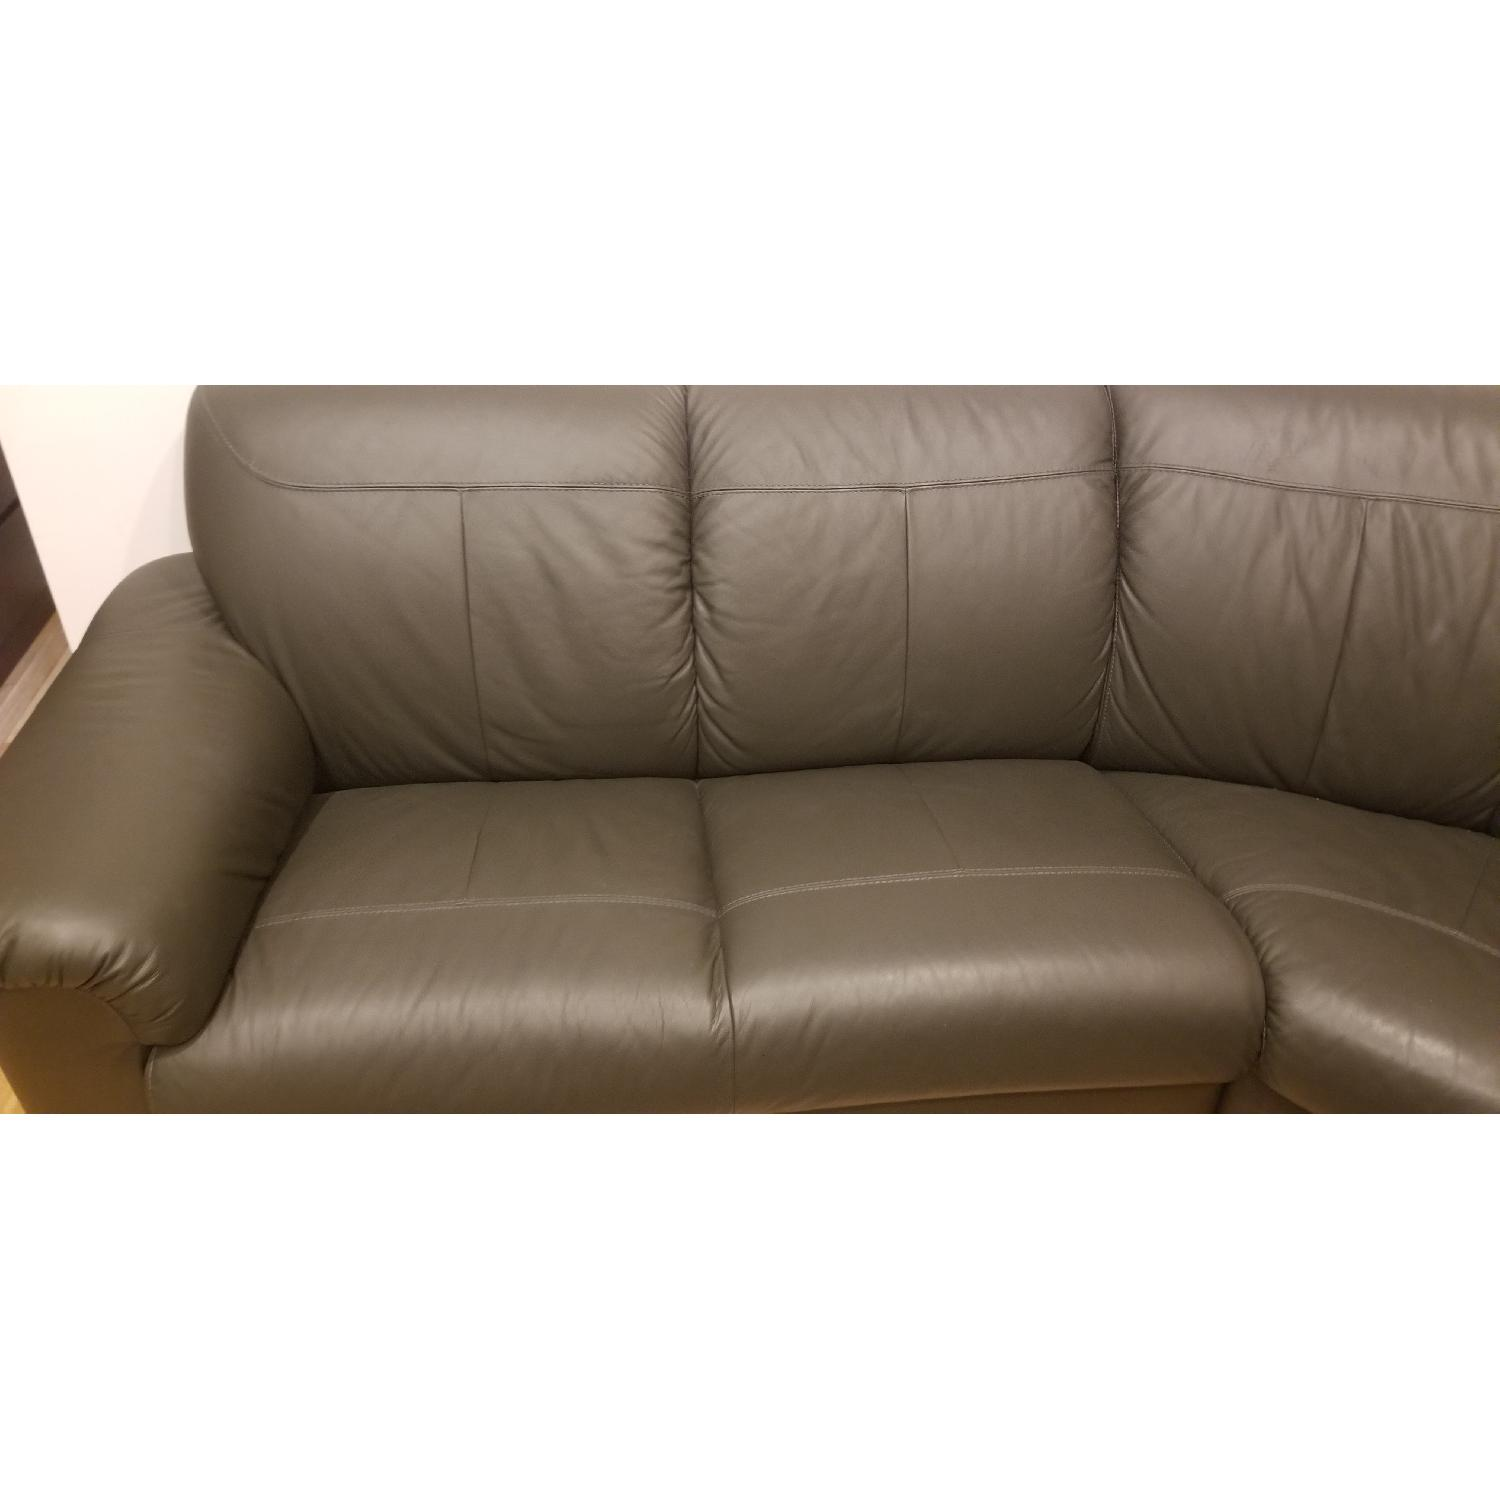 Ikea Timsfors Faux Leather Sectional Sofa - image-10